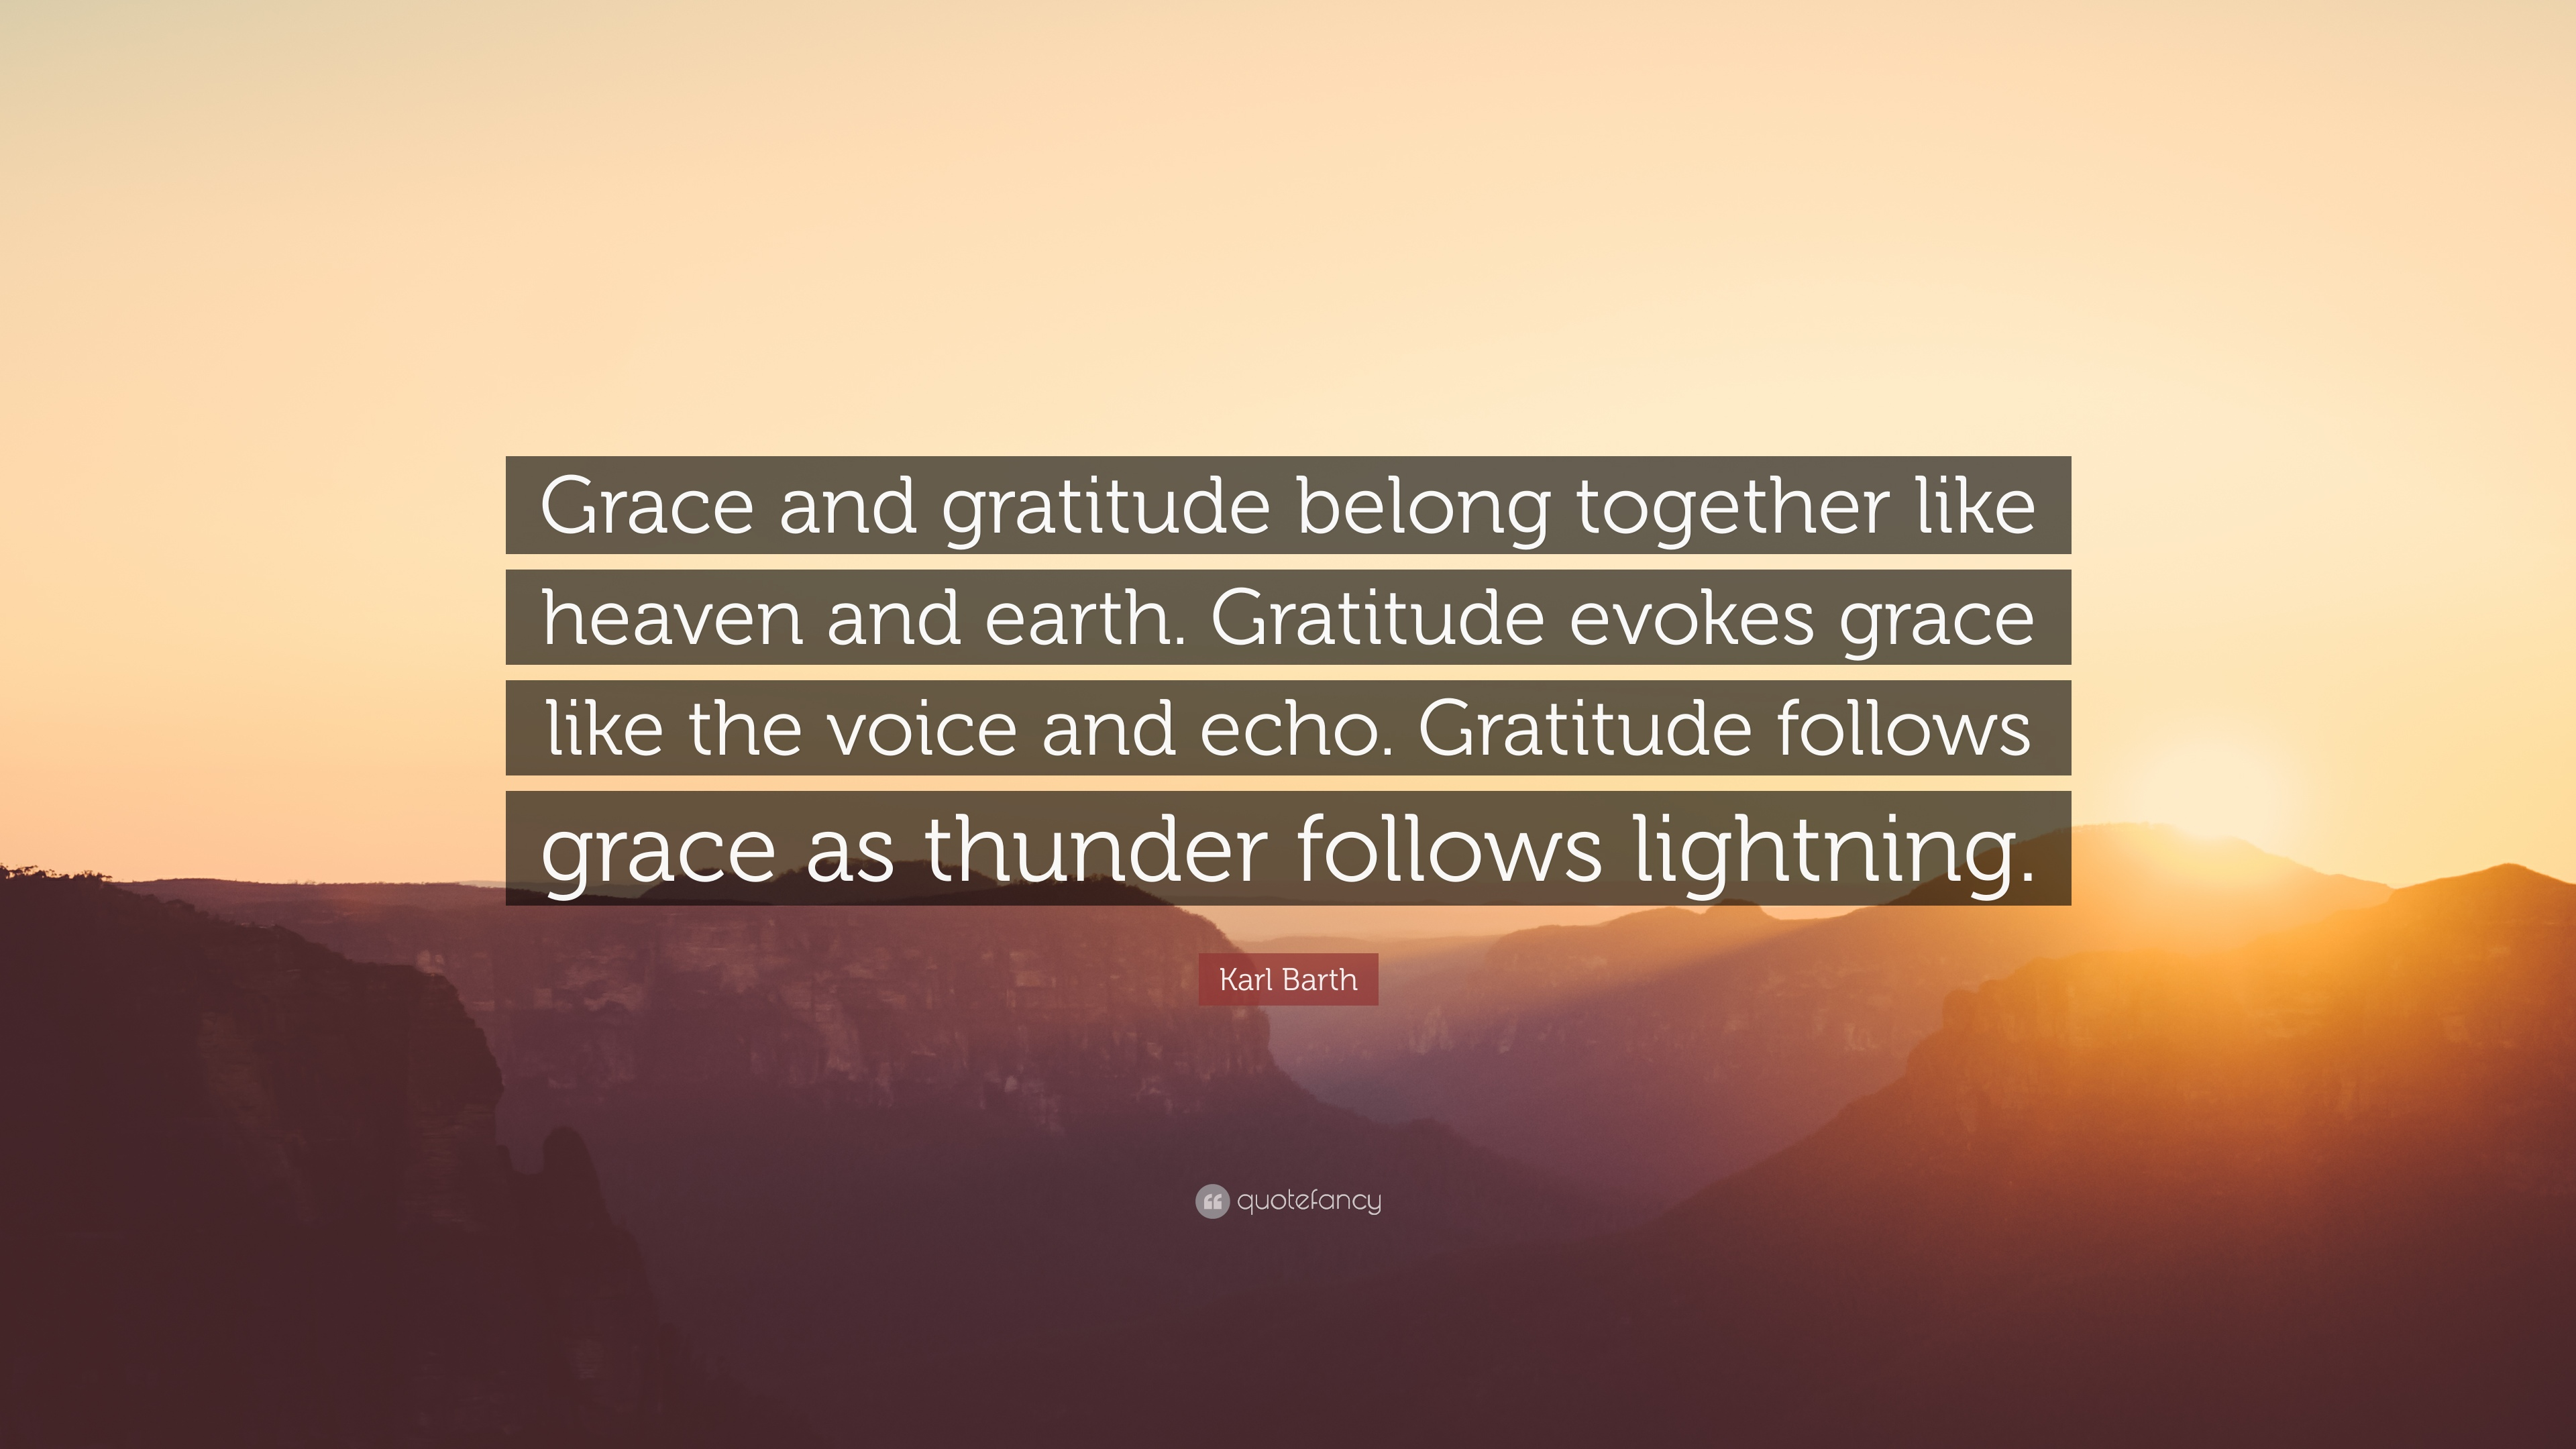 Karl Barth Quote Grace And Gratitude Belong Together Like Heaven